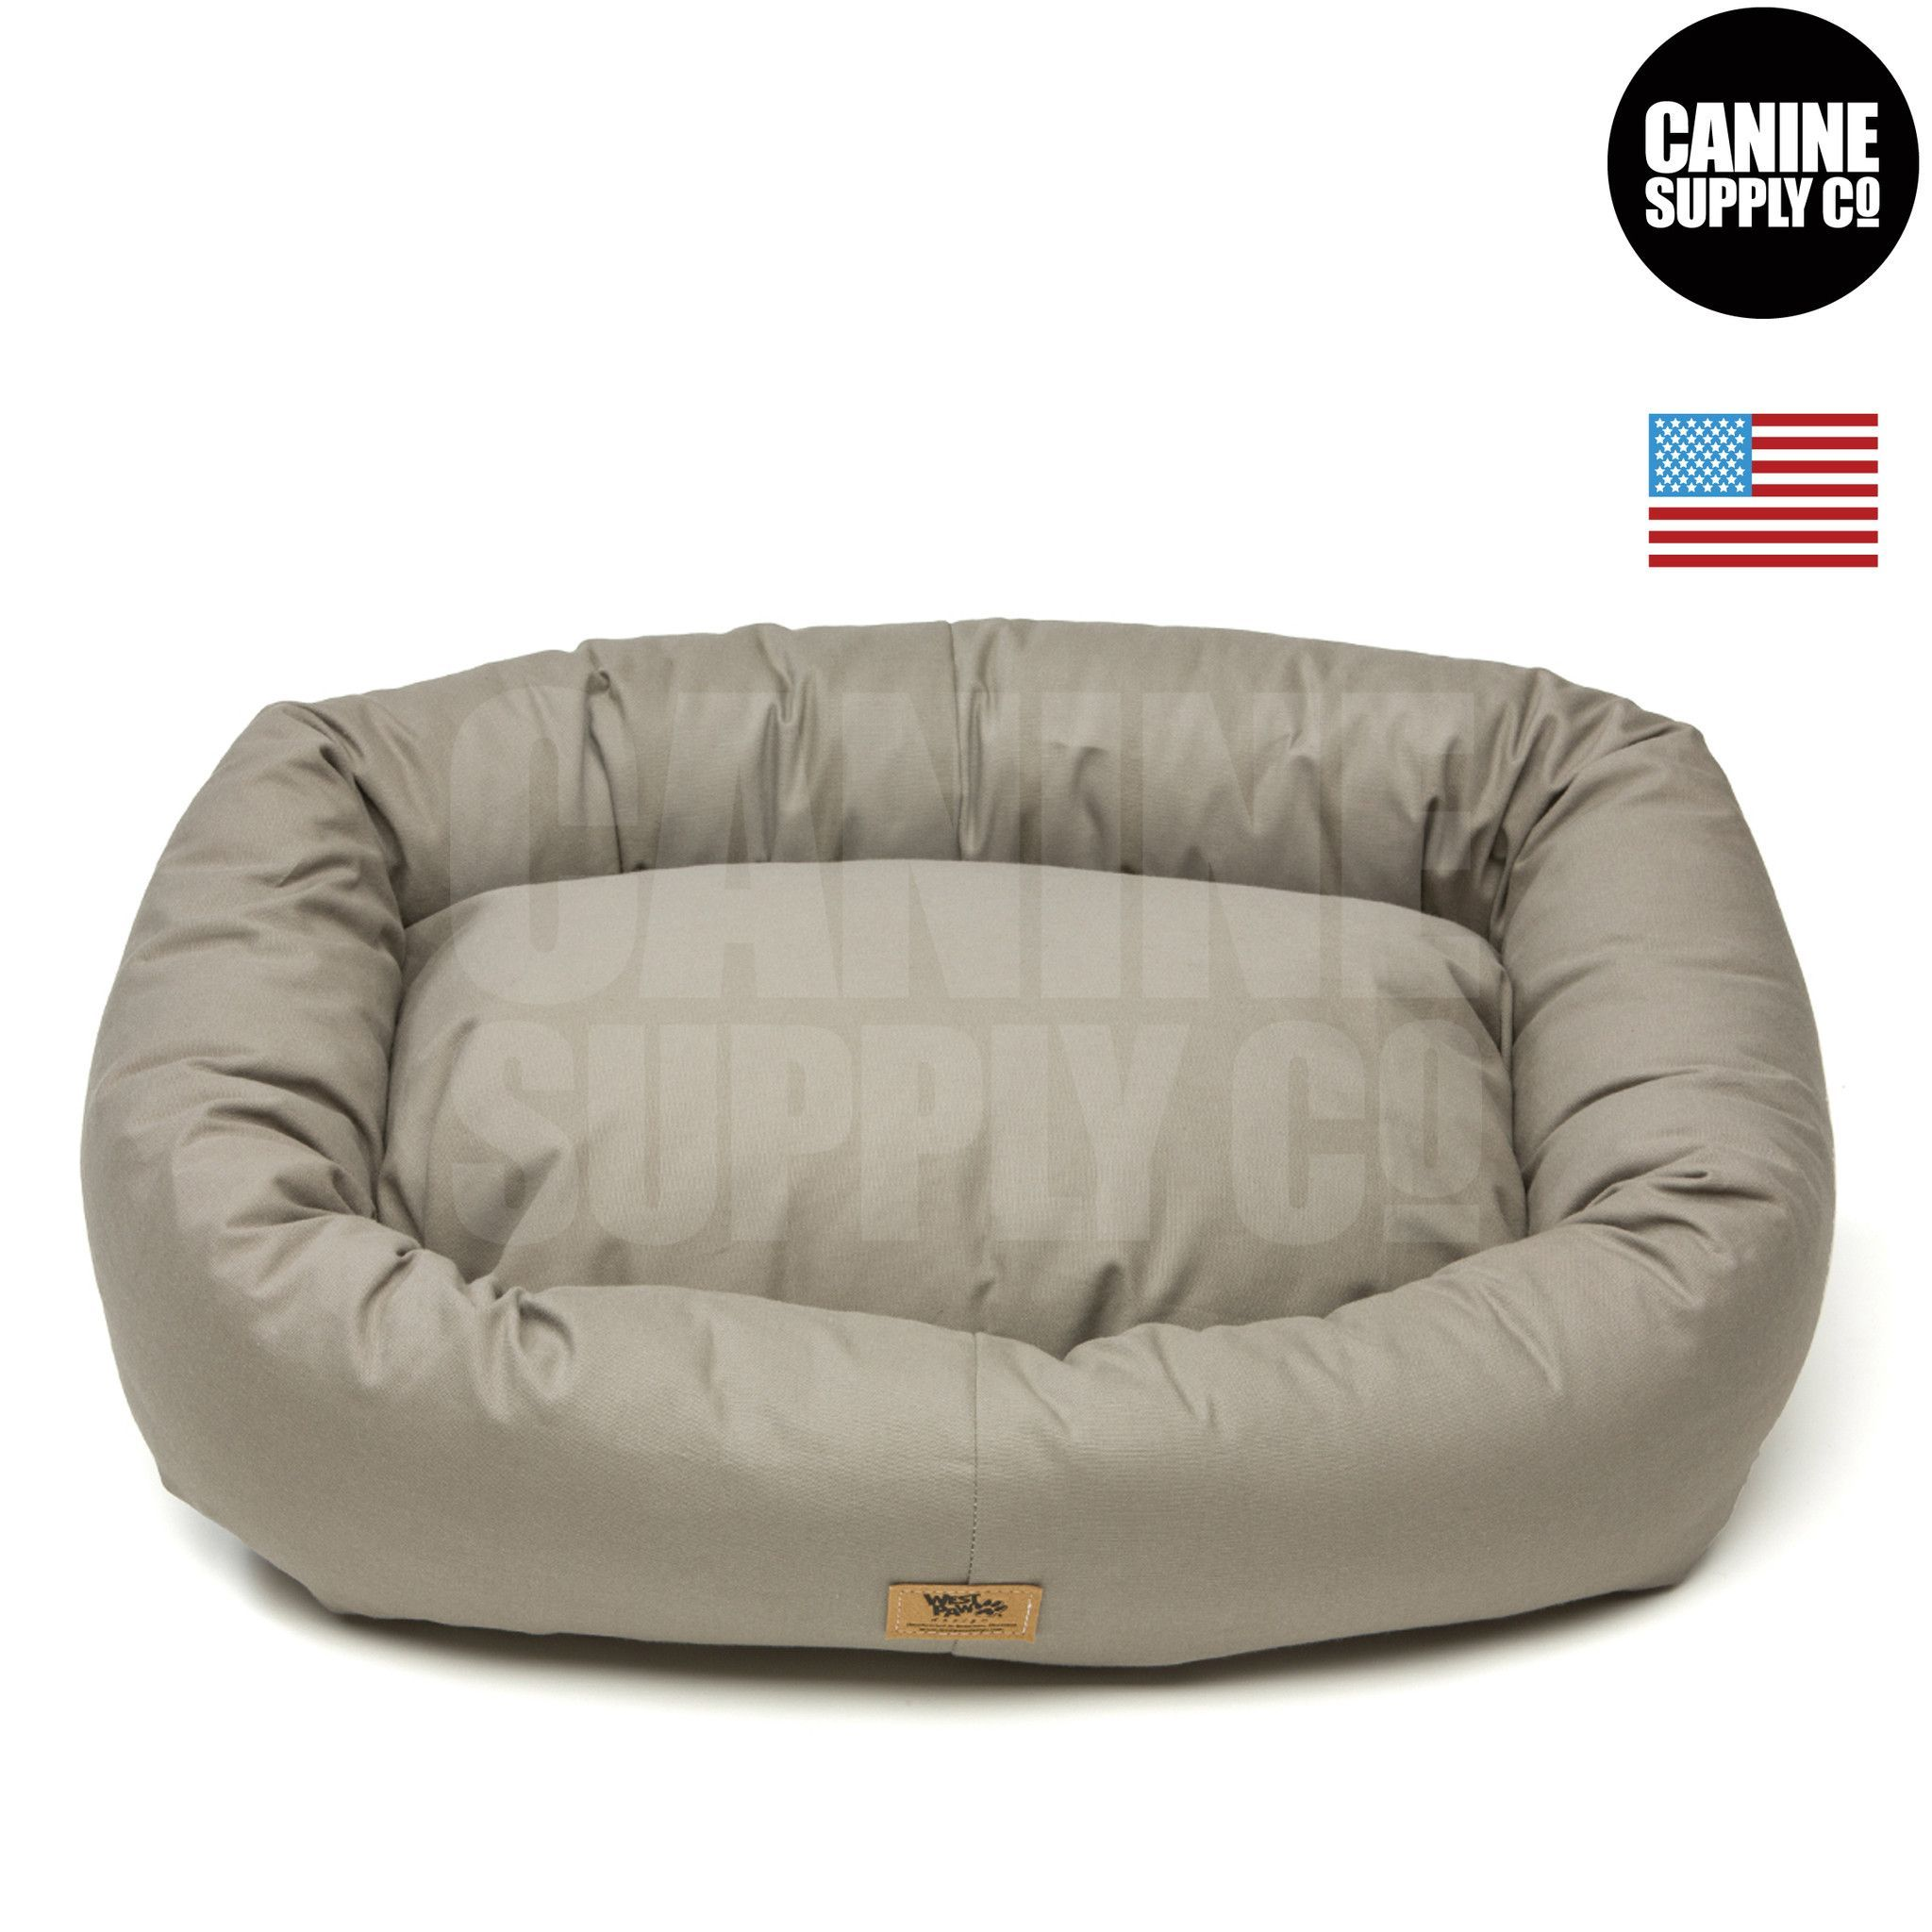 Bumper Bed with Brushed Cotton + Walnut Color Dog Beds